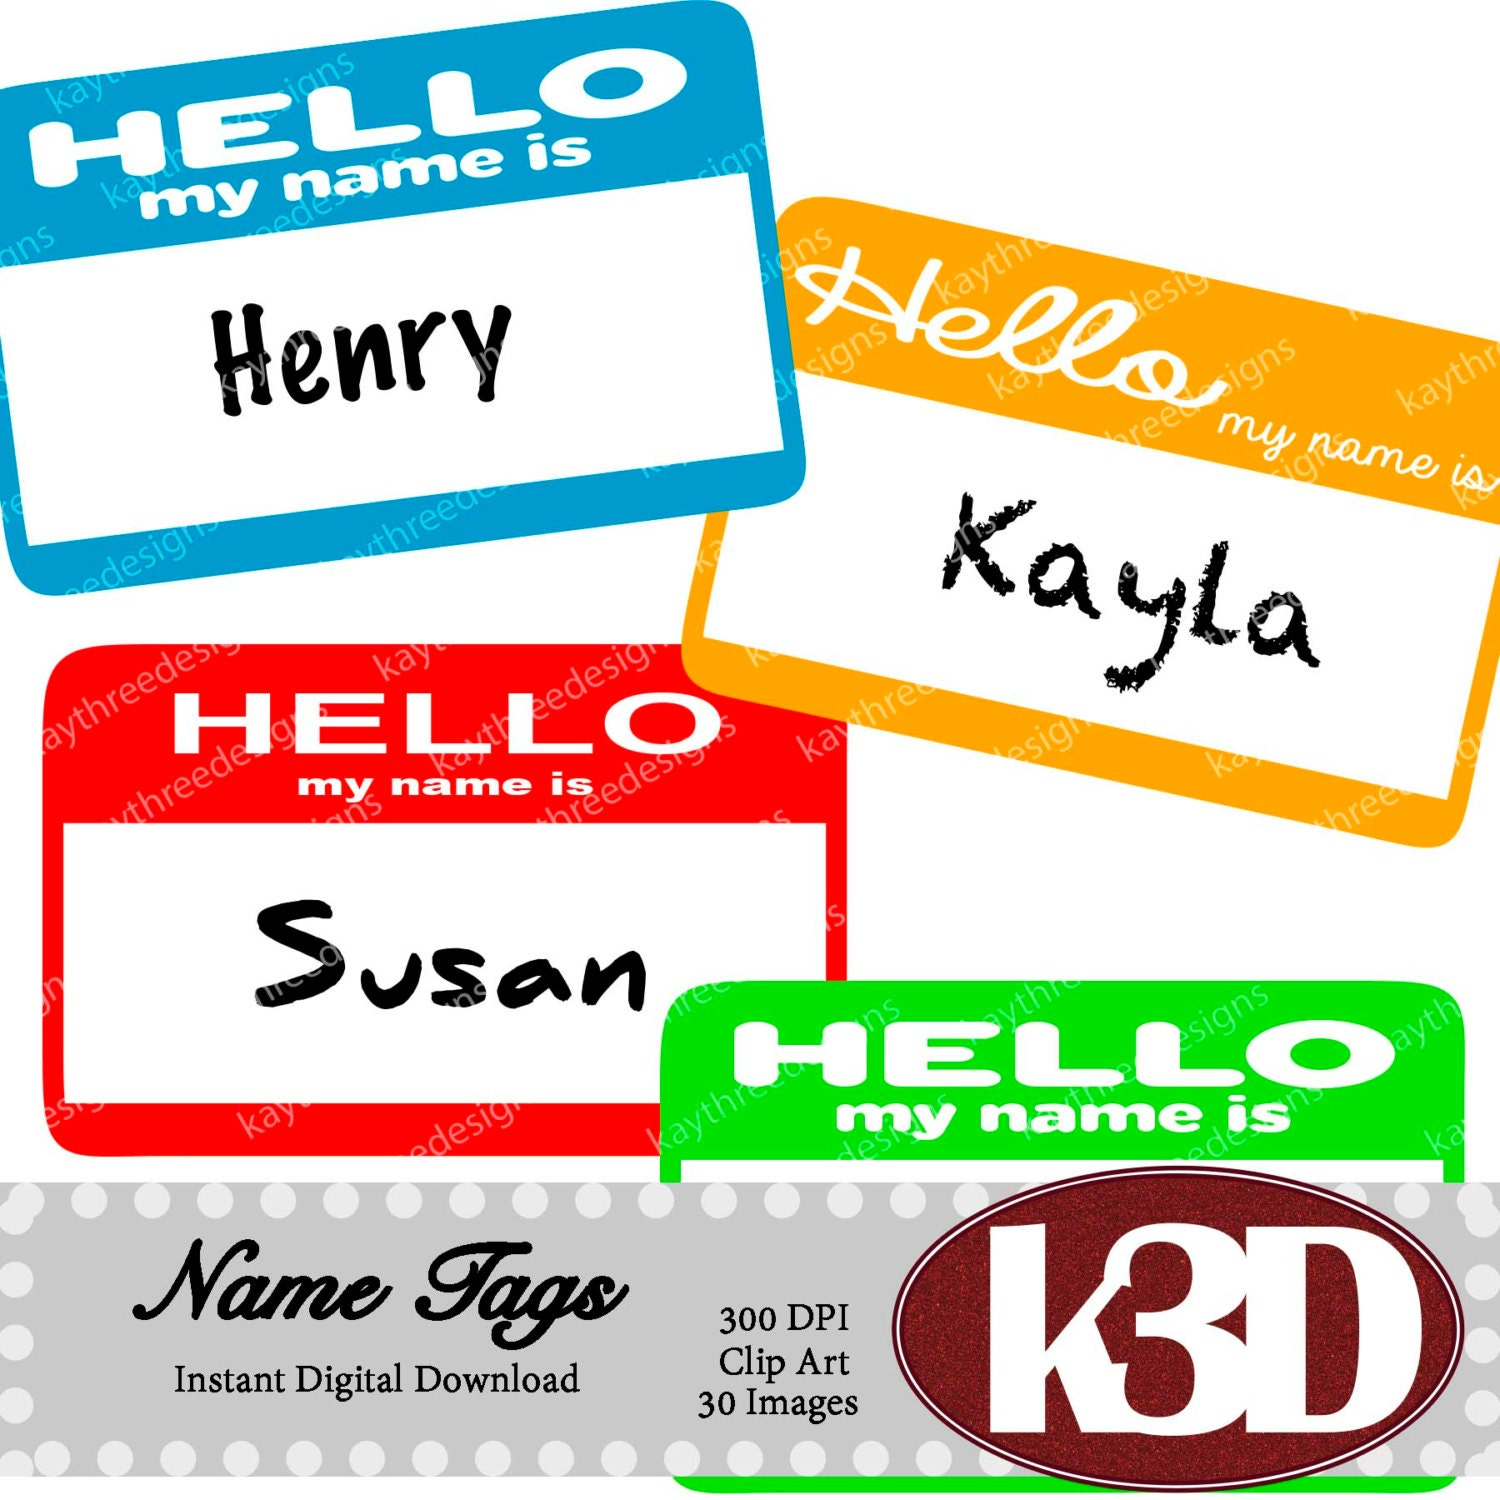 name tags hello my name is name tags rainbow name tags clipart rh etsystudio com name tag clipart black and white cute name tag clipart